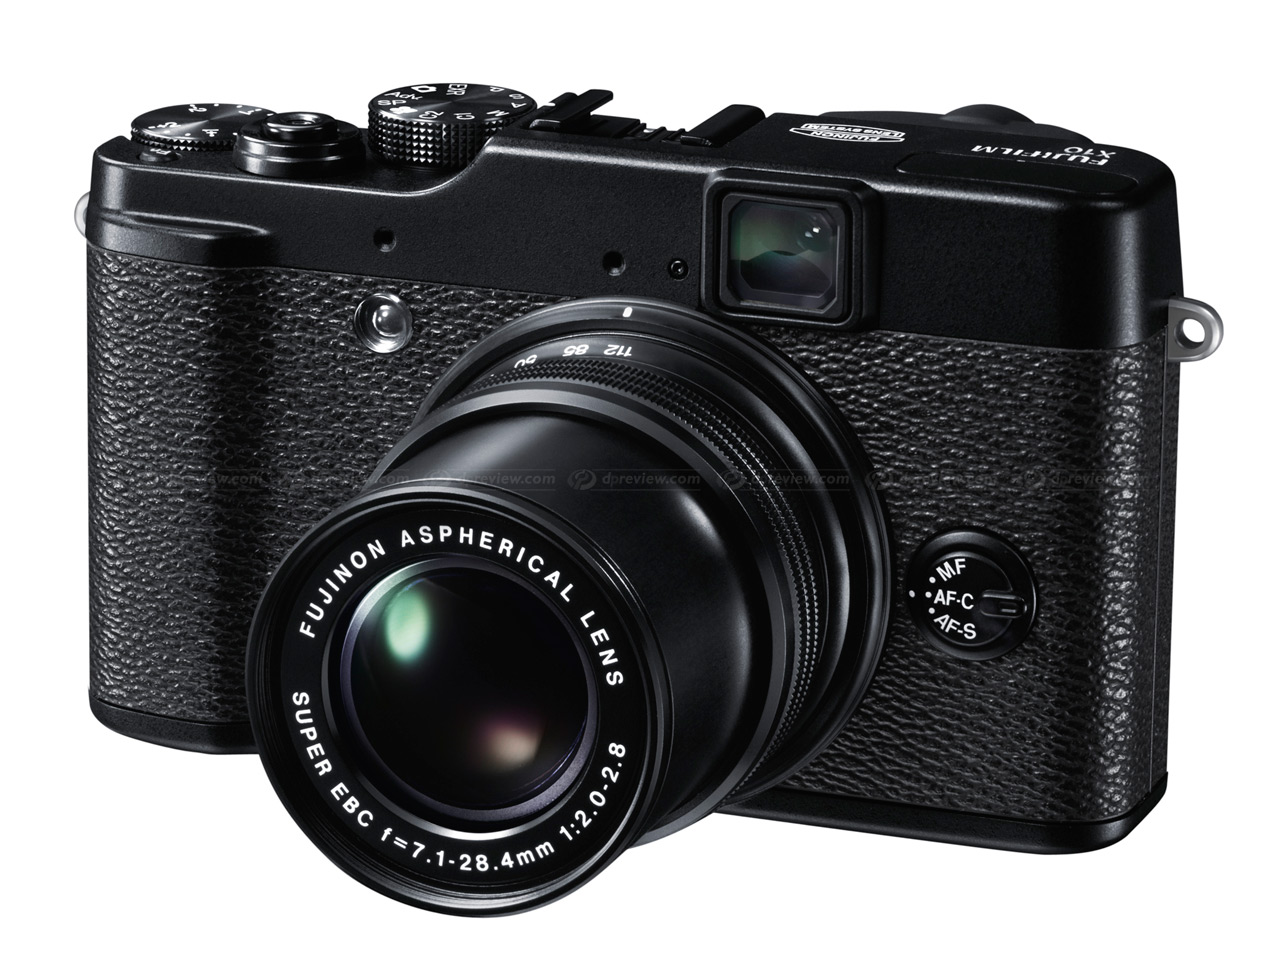 Fujifilm Announces X10 High End Enthusiast Compact